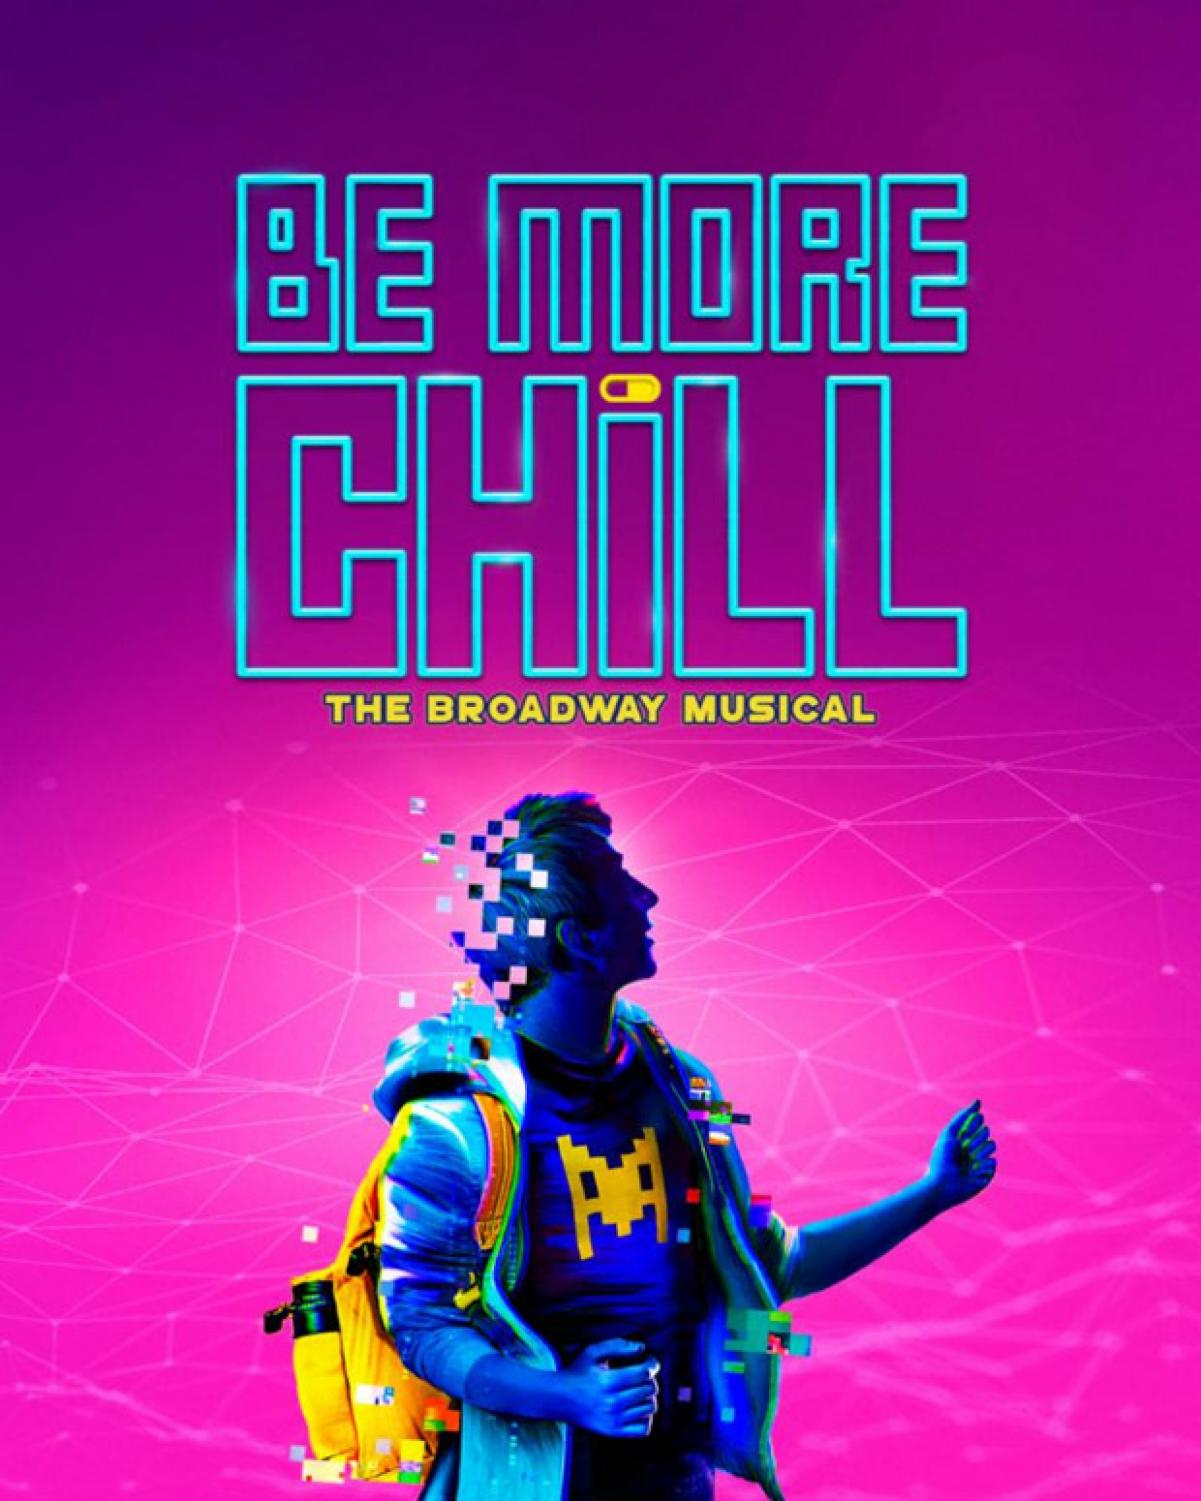 Be More Chill will be showing April 27 at 7:30 p.m. and April 28 at 2 p.m. at Illusion Theater.